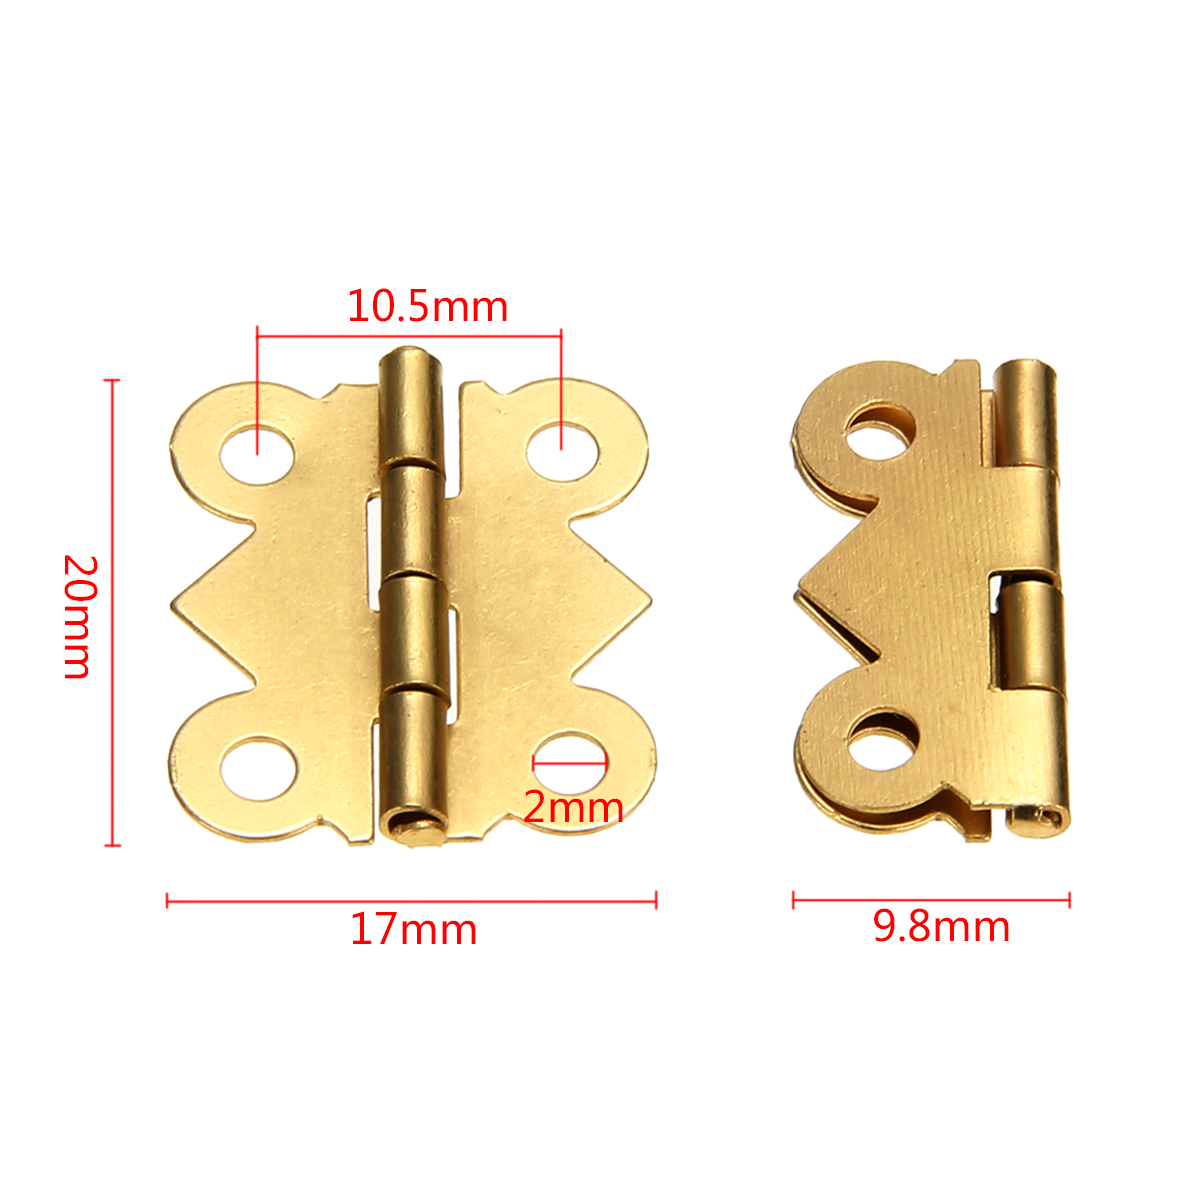 10pcs/set Mini Butterfly Iron Hinges Cabinet Drawer Door Hinge Jewelry Box DIY Tool With Screws For Furniture Hardware Accessory